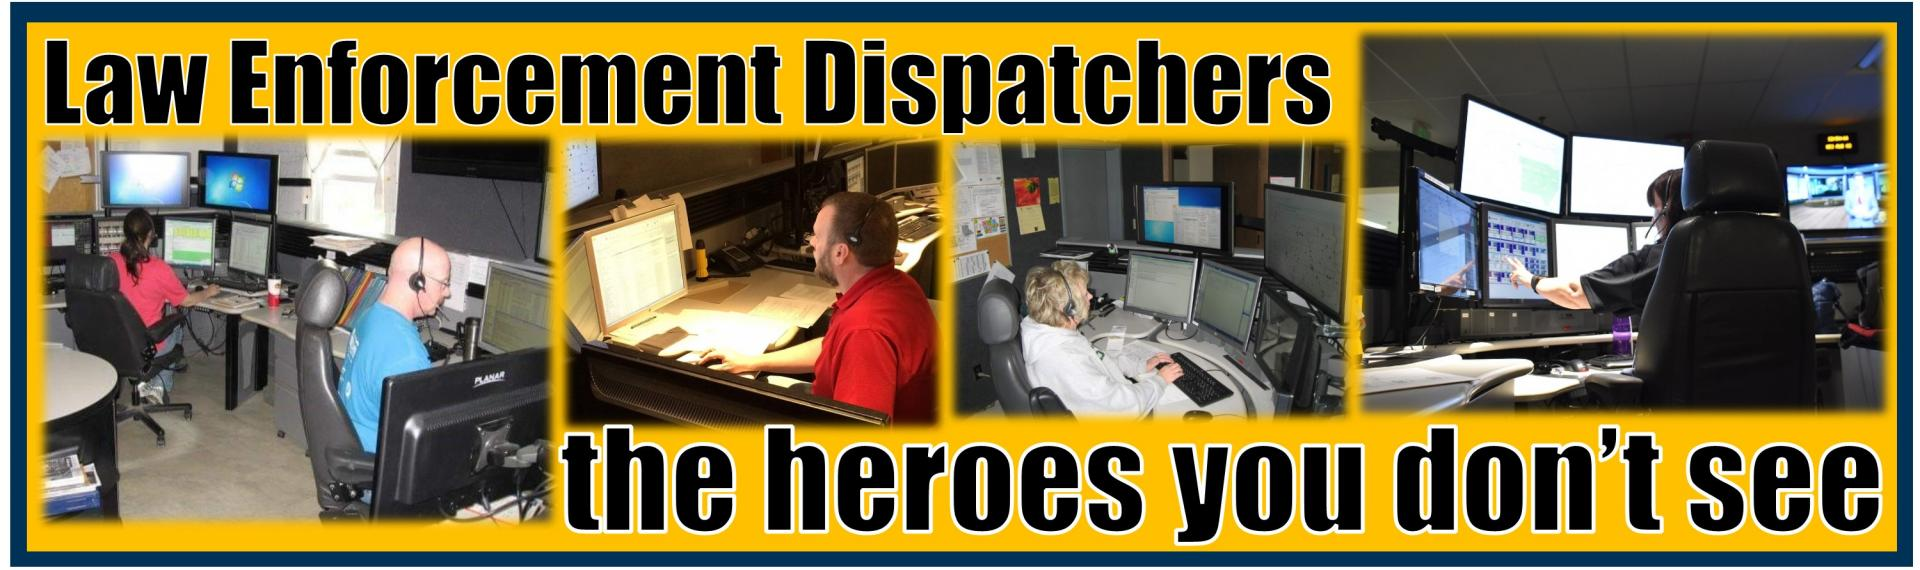 Law Enforcement Dispatchers - the heroes you don't see